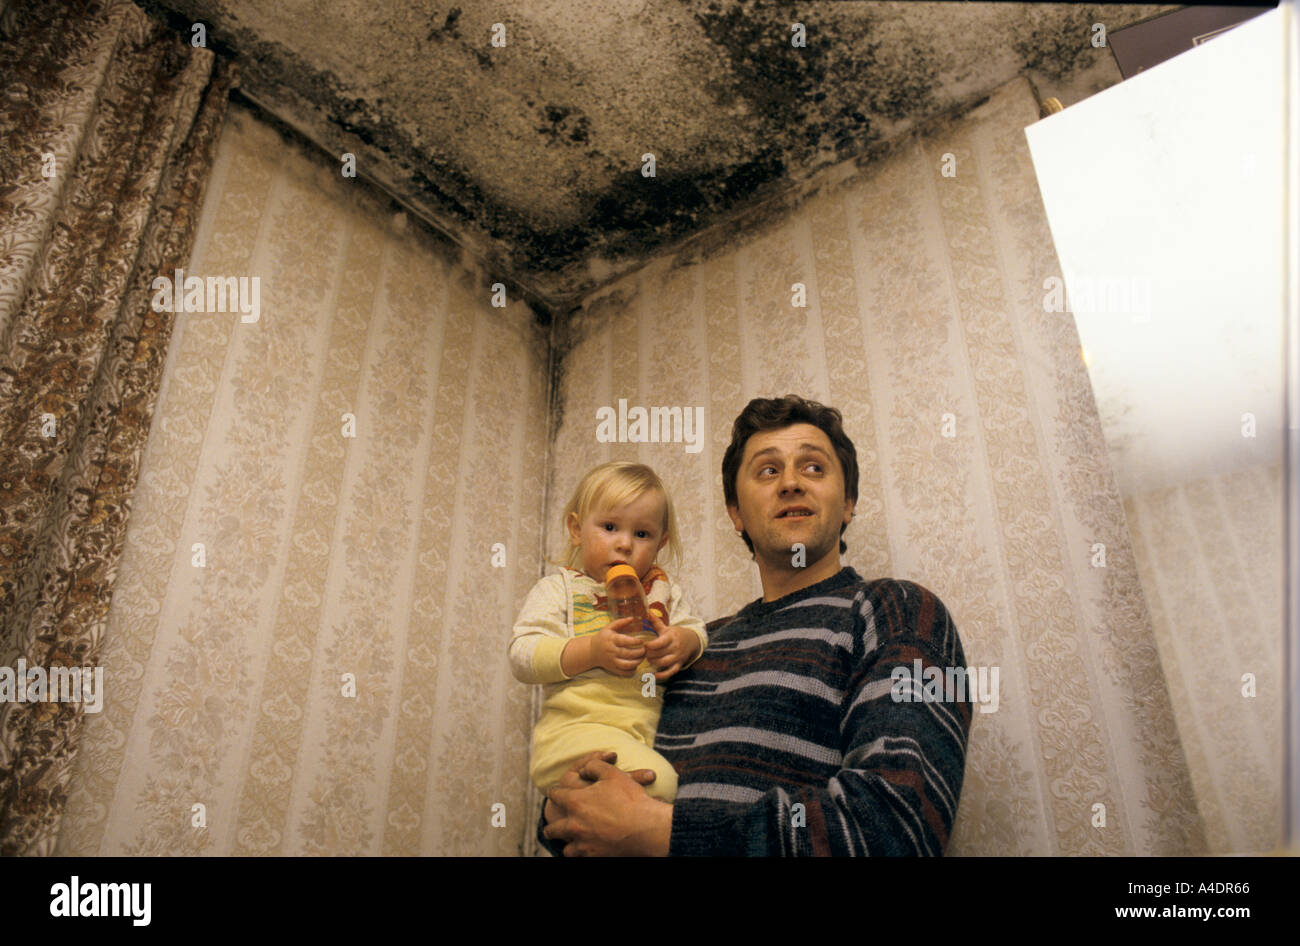 Poor housing conditions, Tower Hamlets, London  1999 - Stock Image